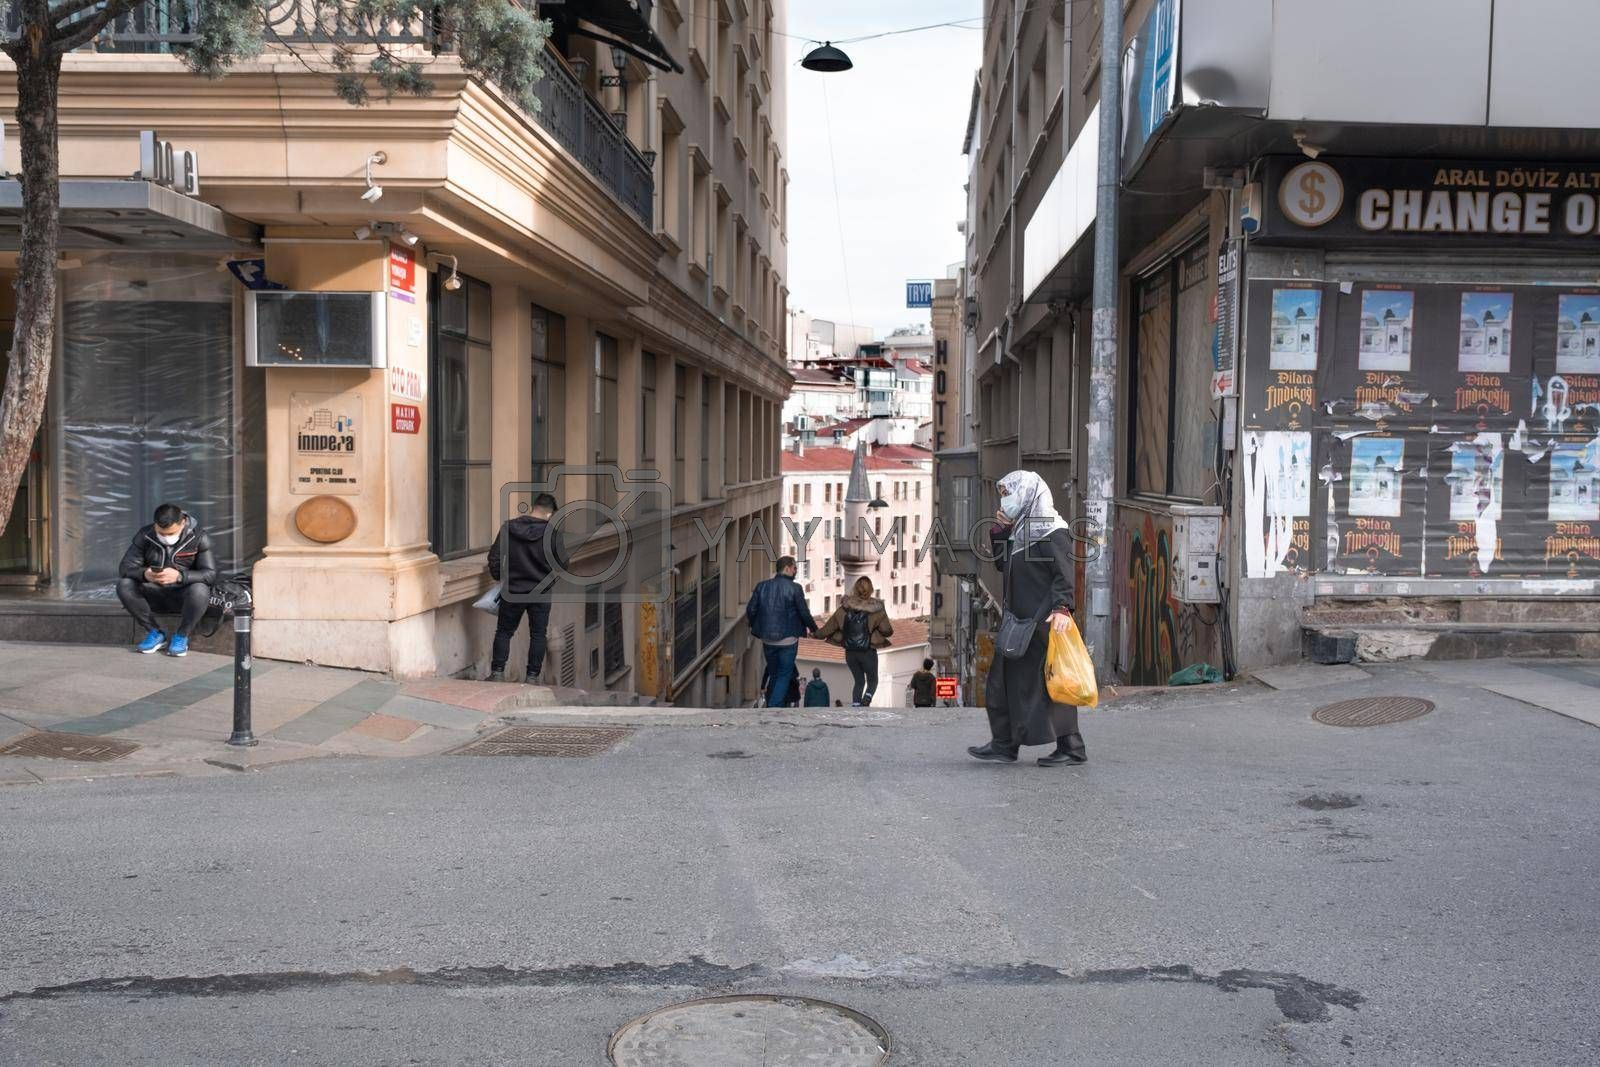 a hijabi woman talking on phone, a man sitting and a couple walking on street